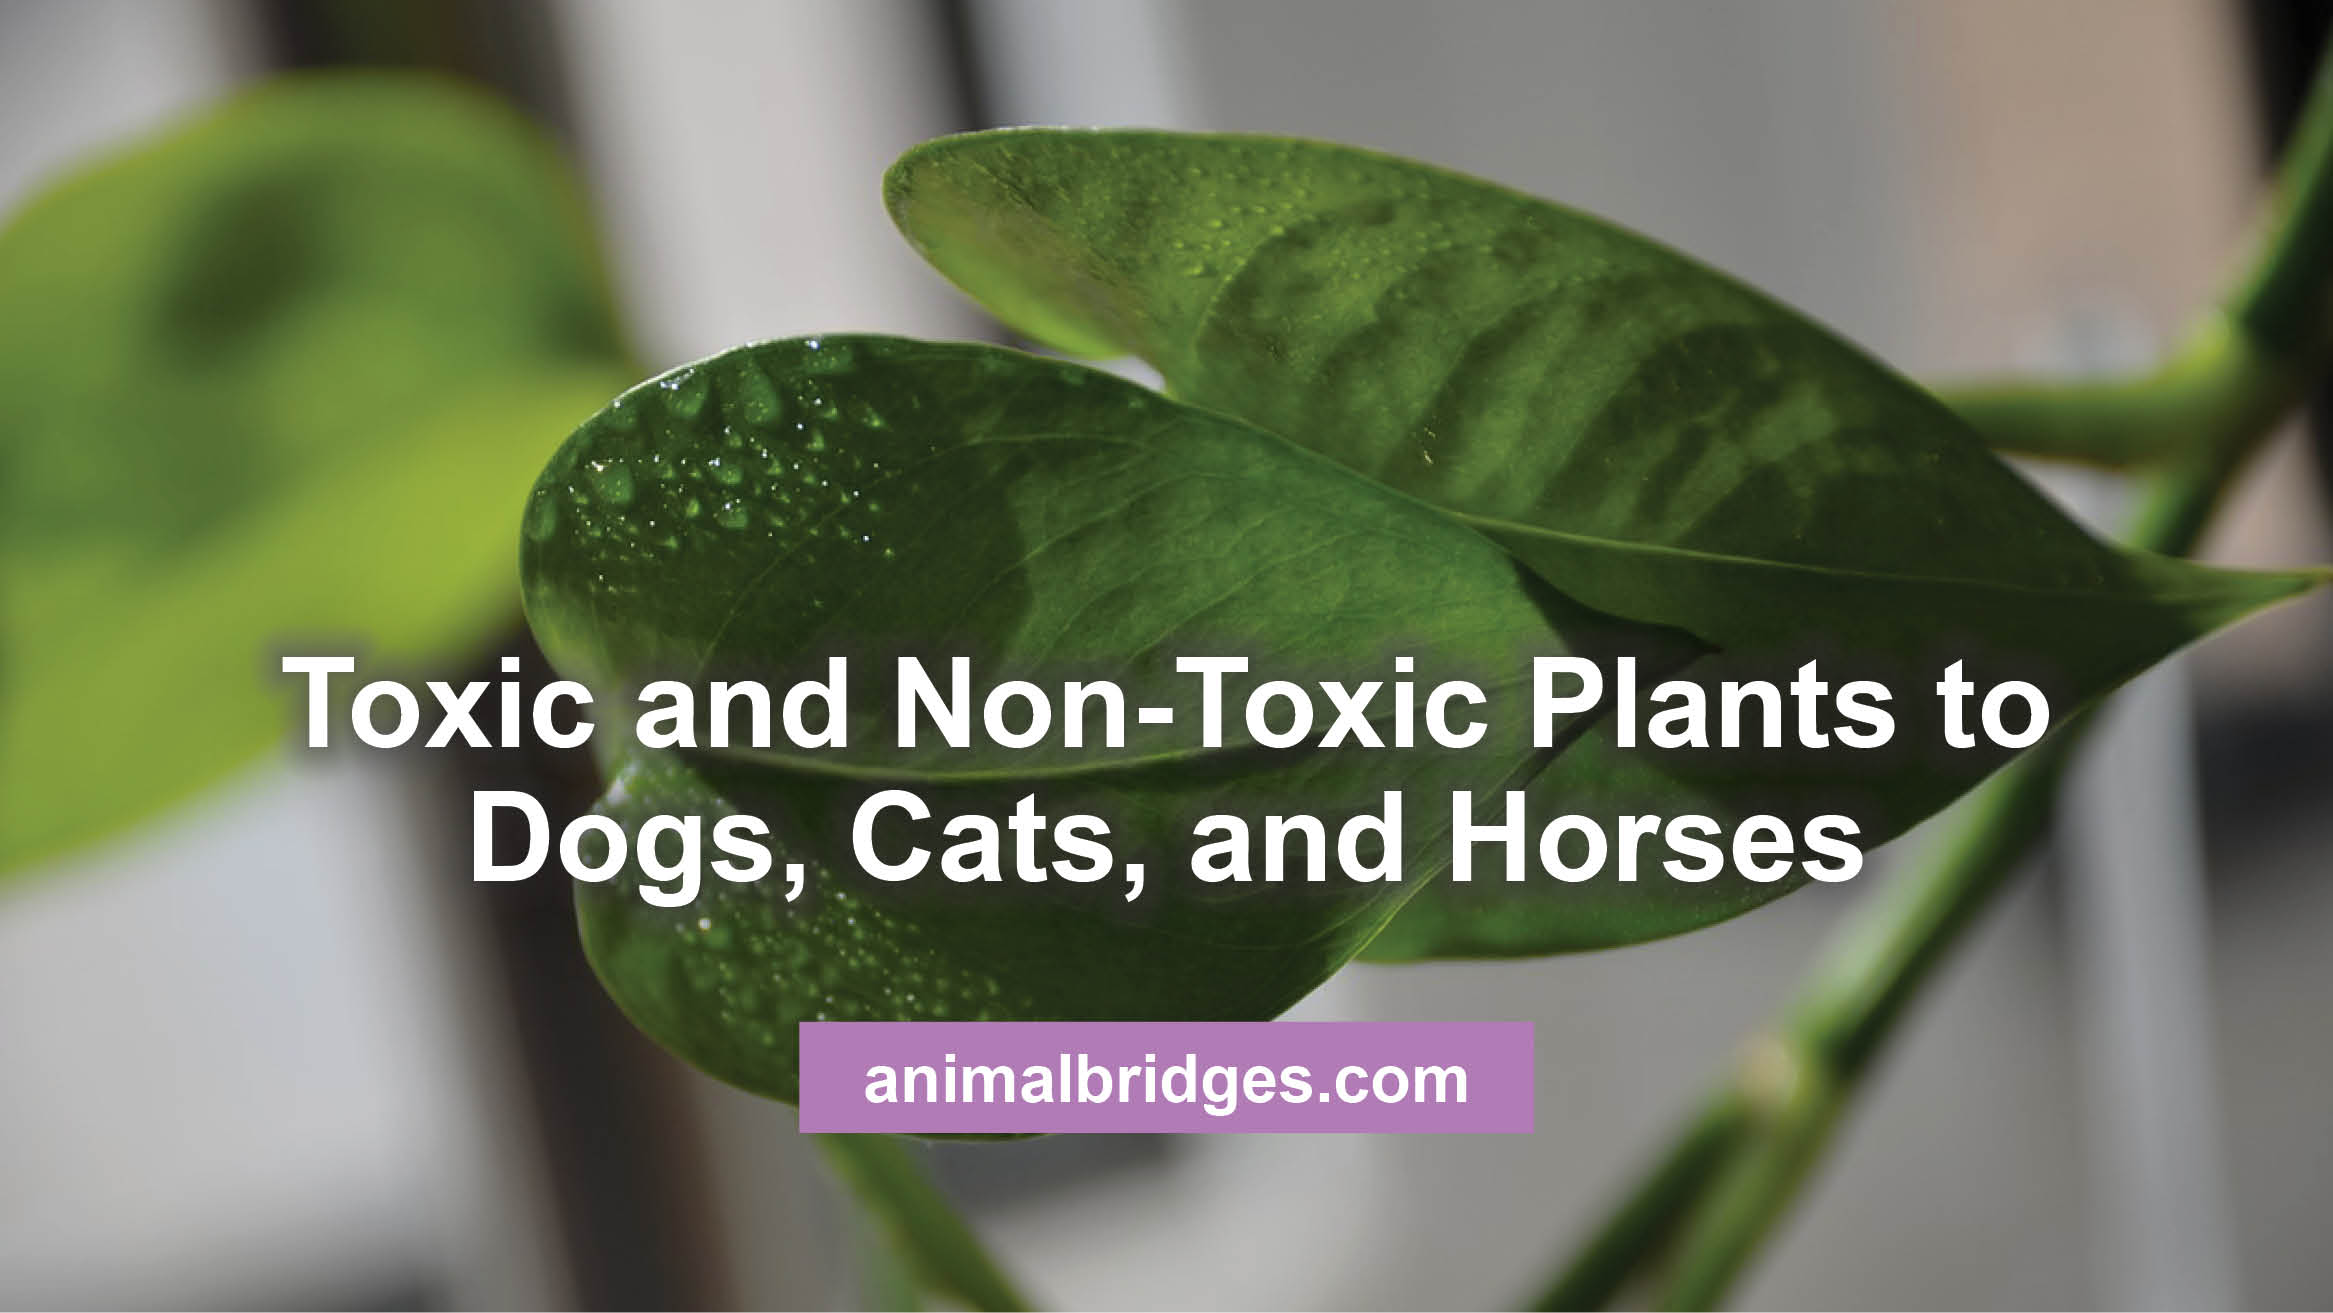 Design Plants Safe For Dogs toxic and non plants to dogs cats horses